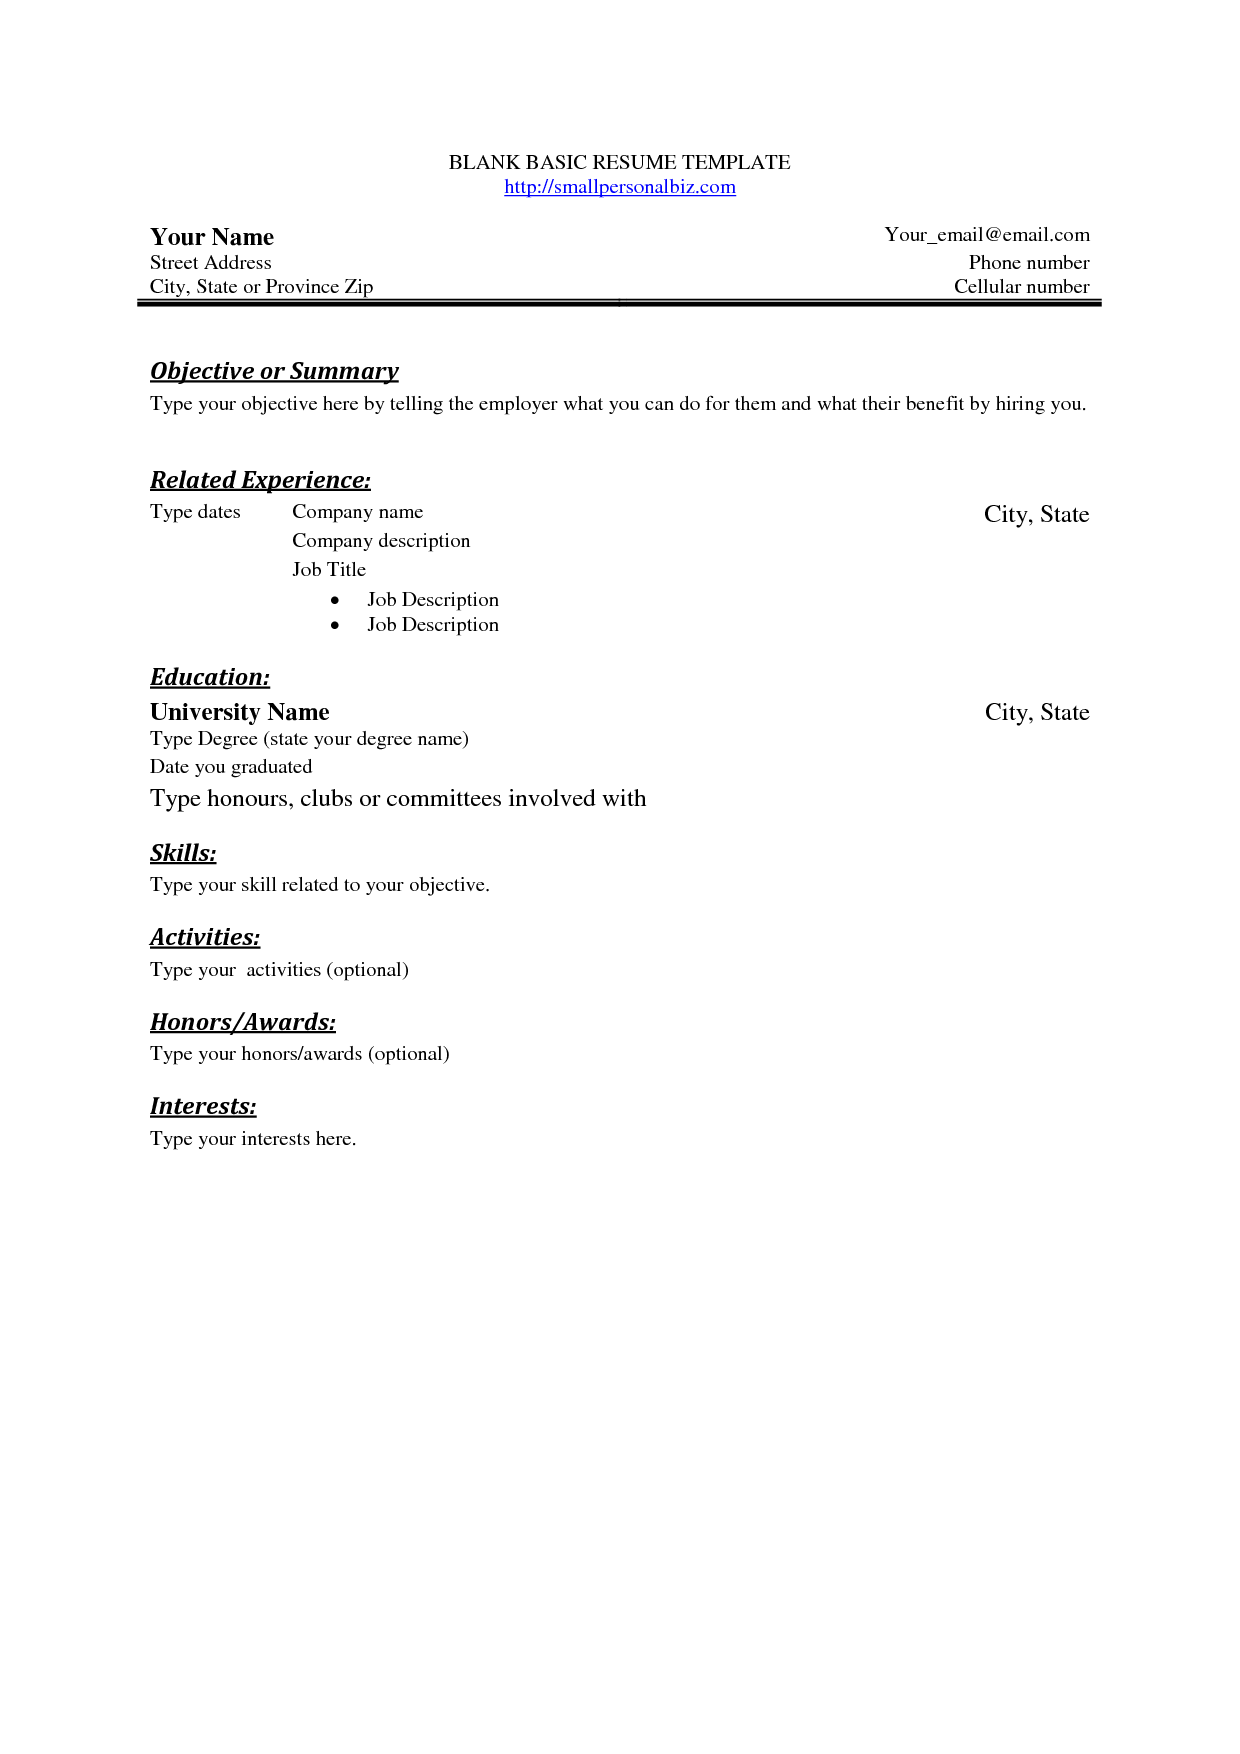 Blank Simple Resume Template